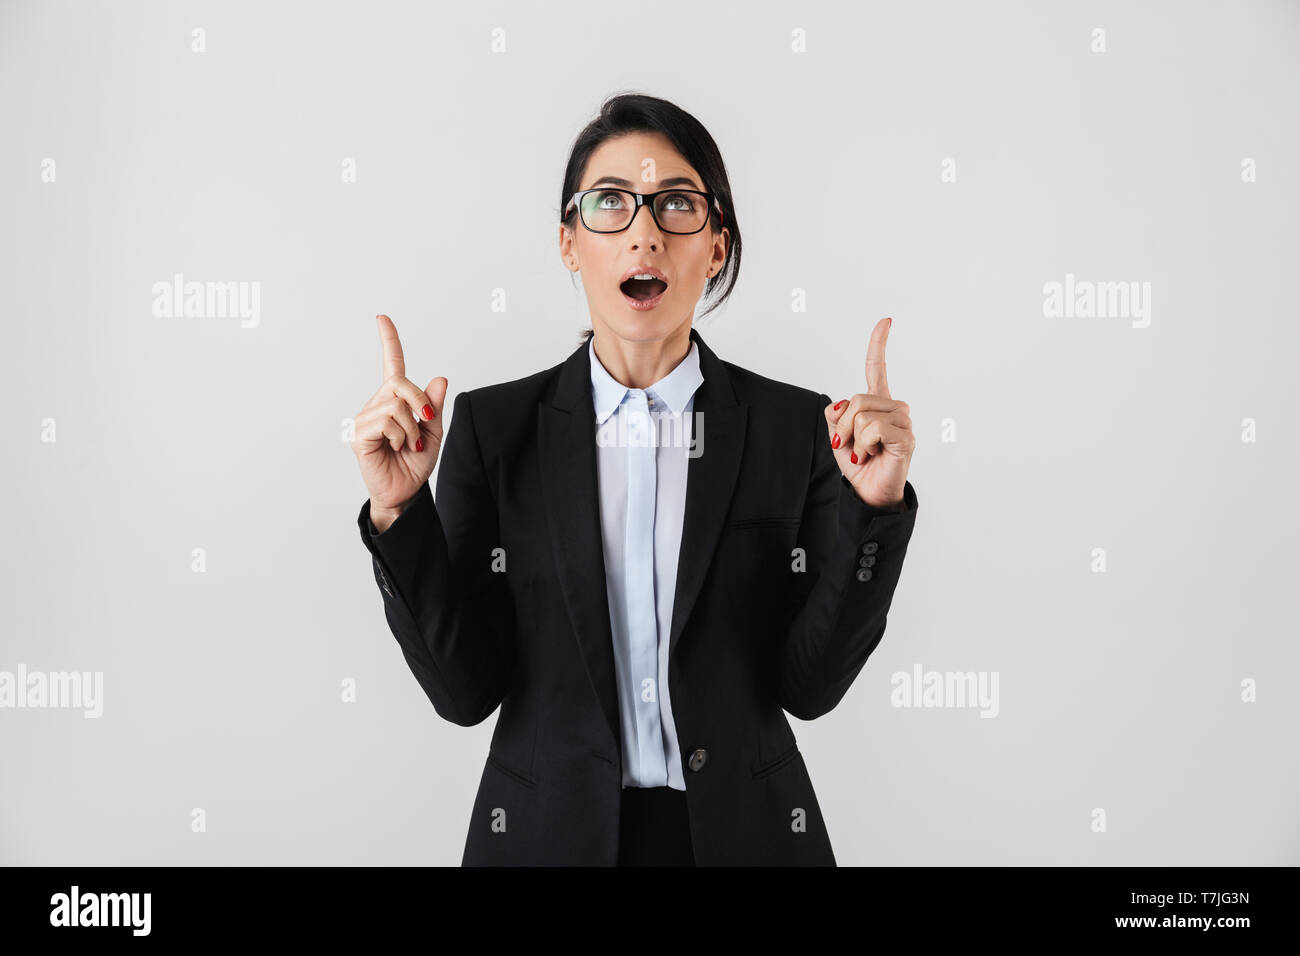 Portrait of cute businesswoman 30s in formal wear and eyeglasses pointing fingers upward isolated over white background - Stock Image